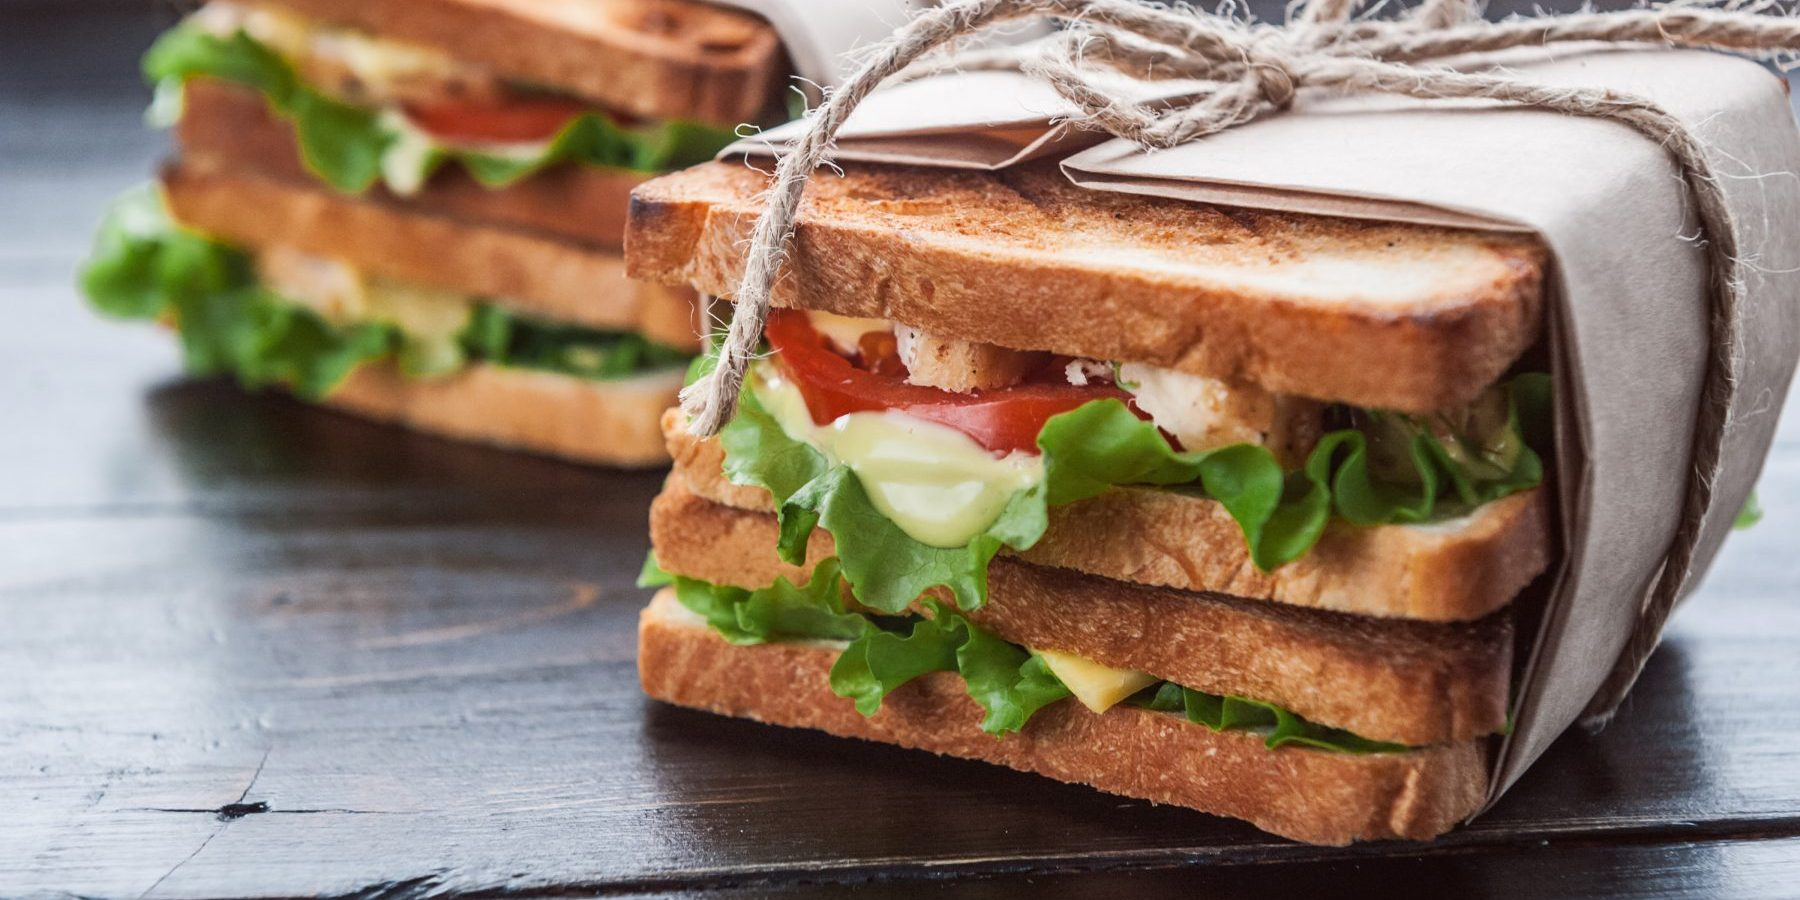 delicious homemade sandwich in rustic style